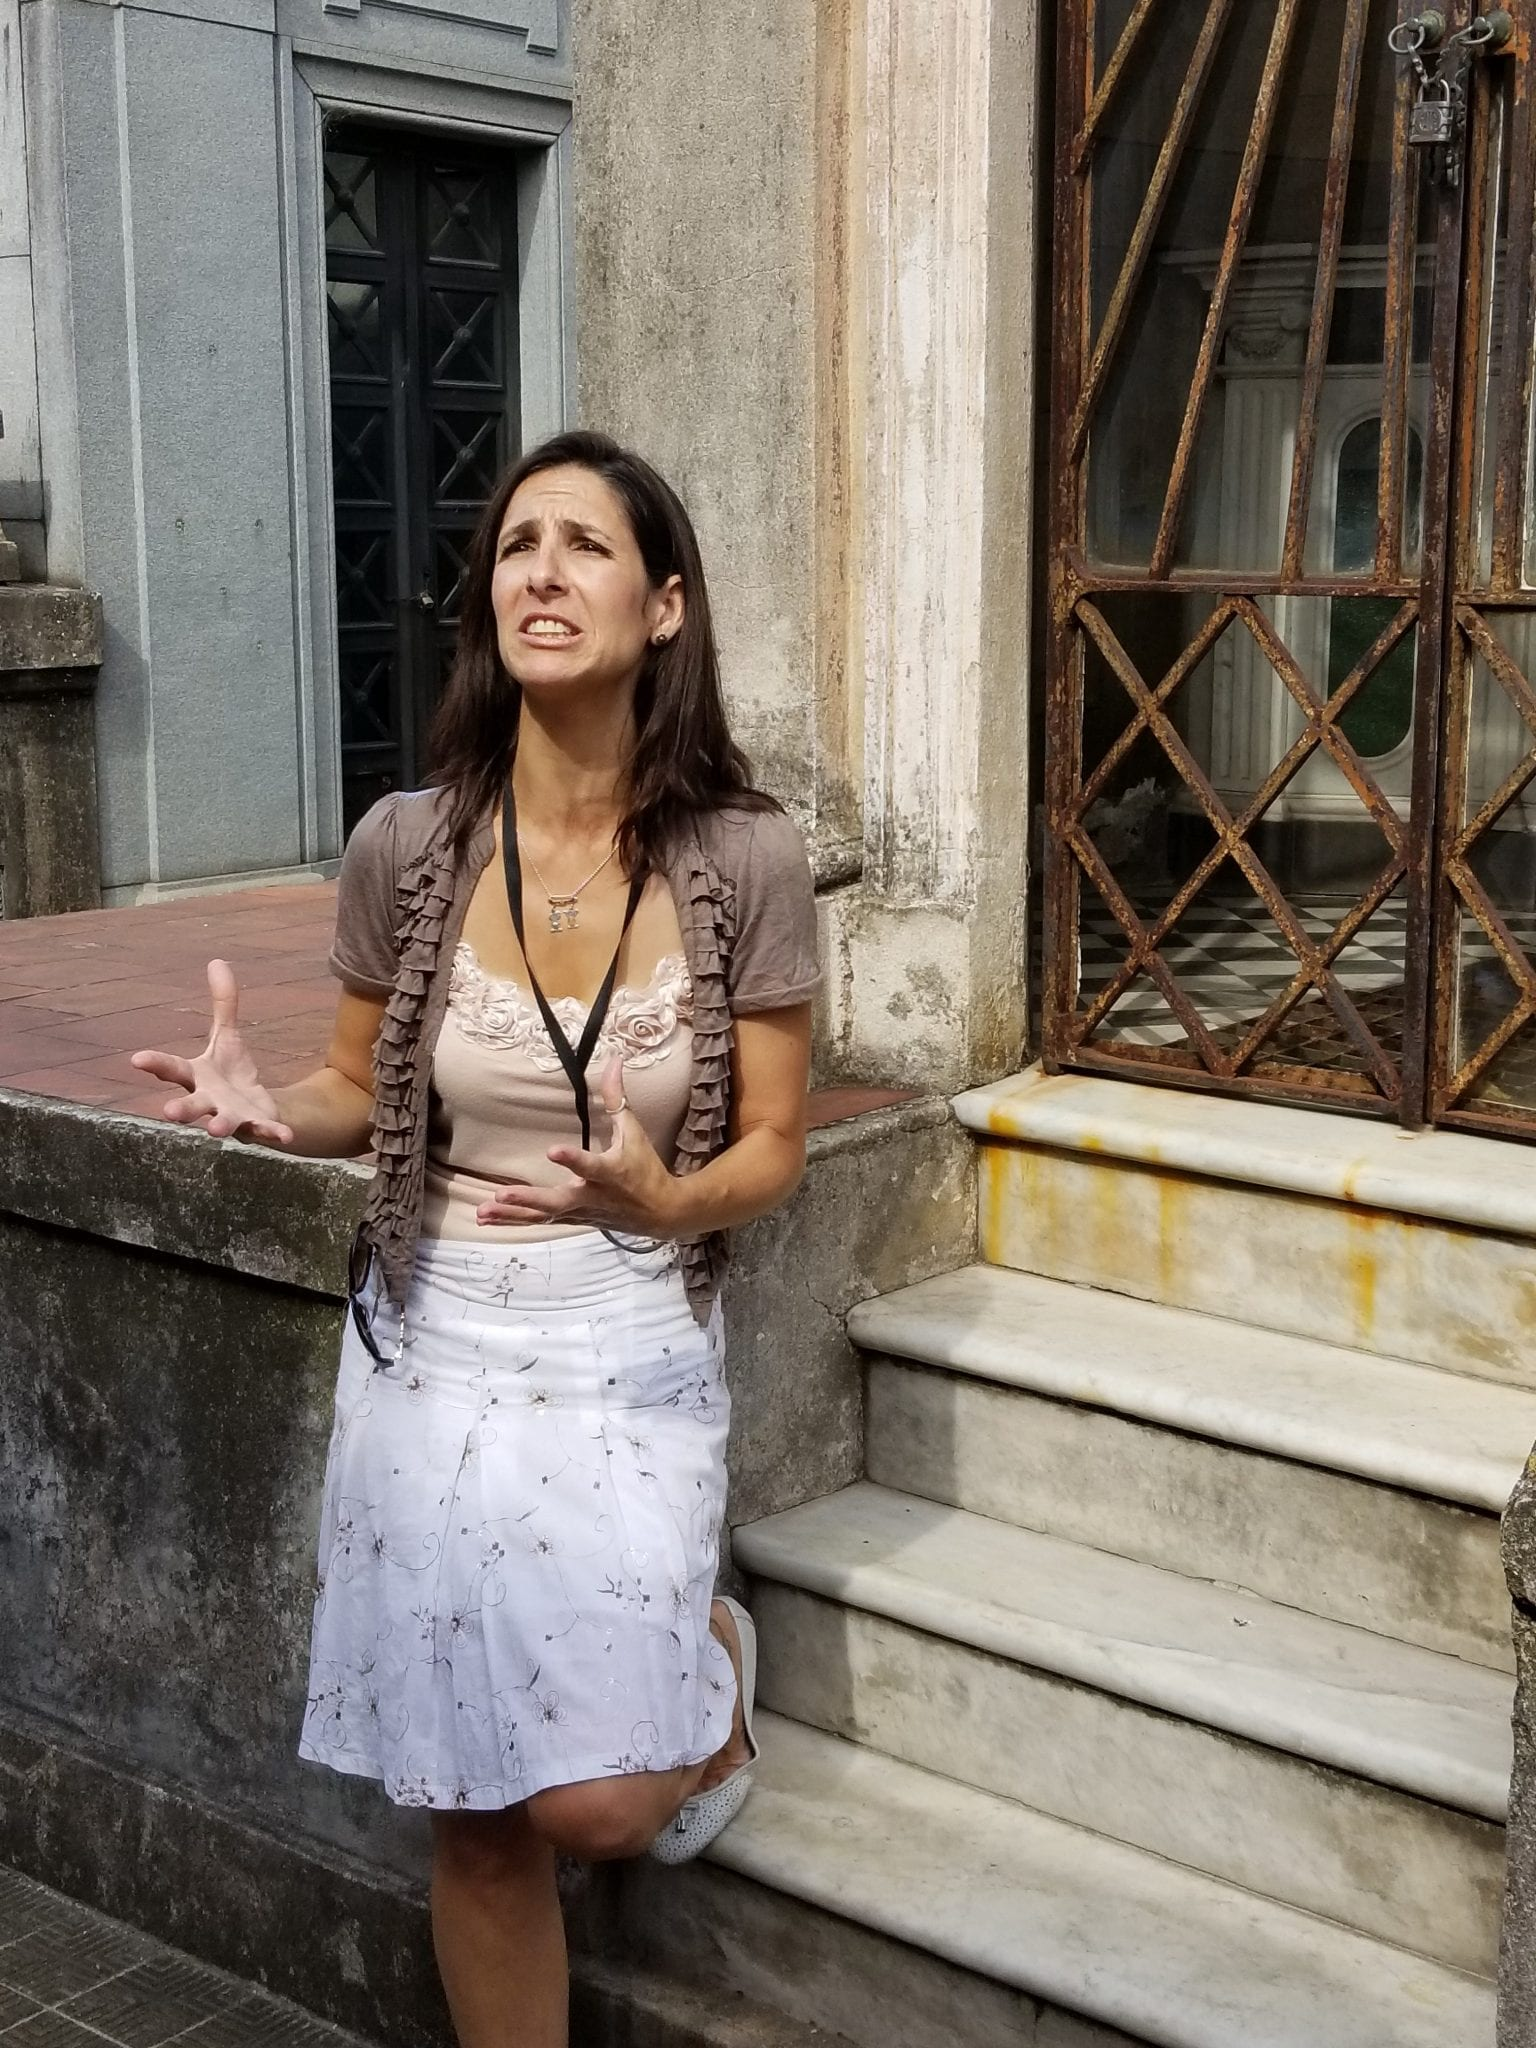 #4 emotional local guide telling Evita's story - Copy